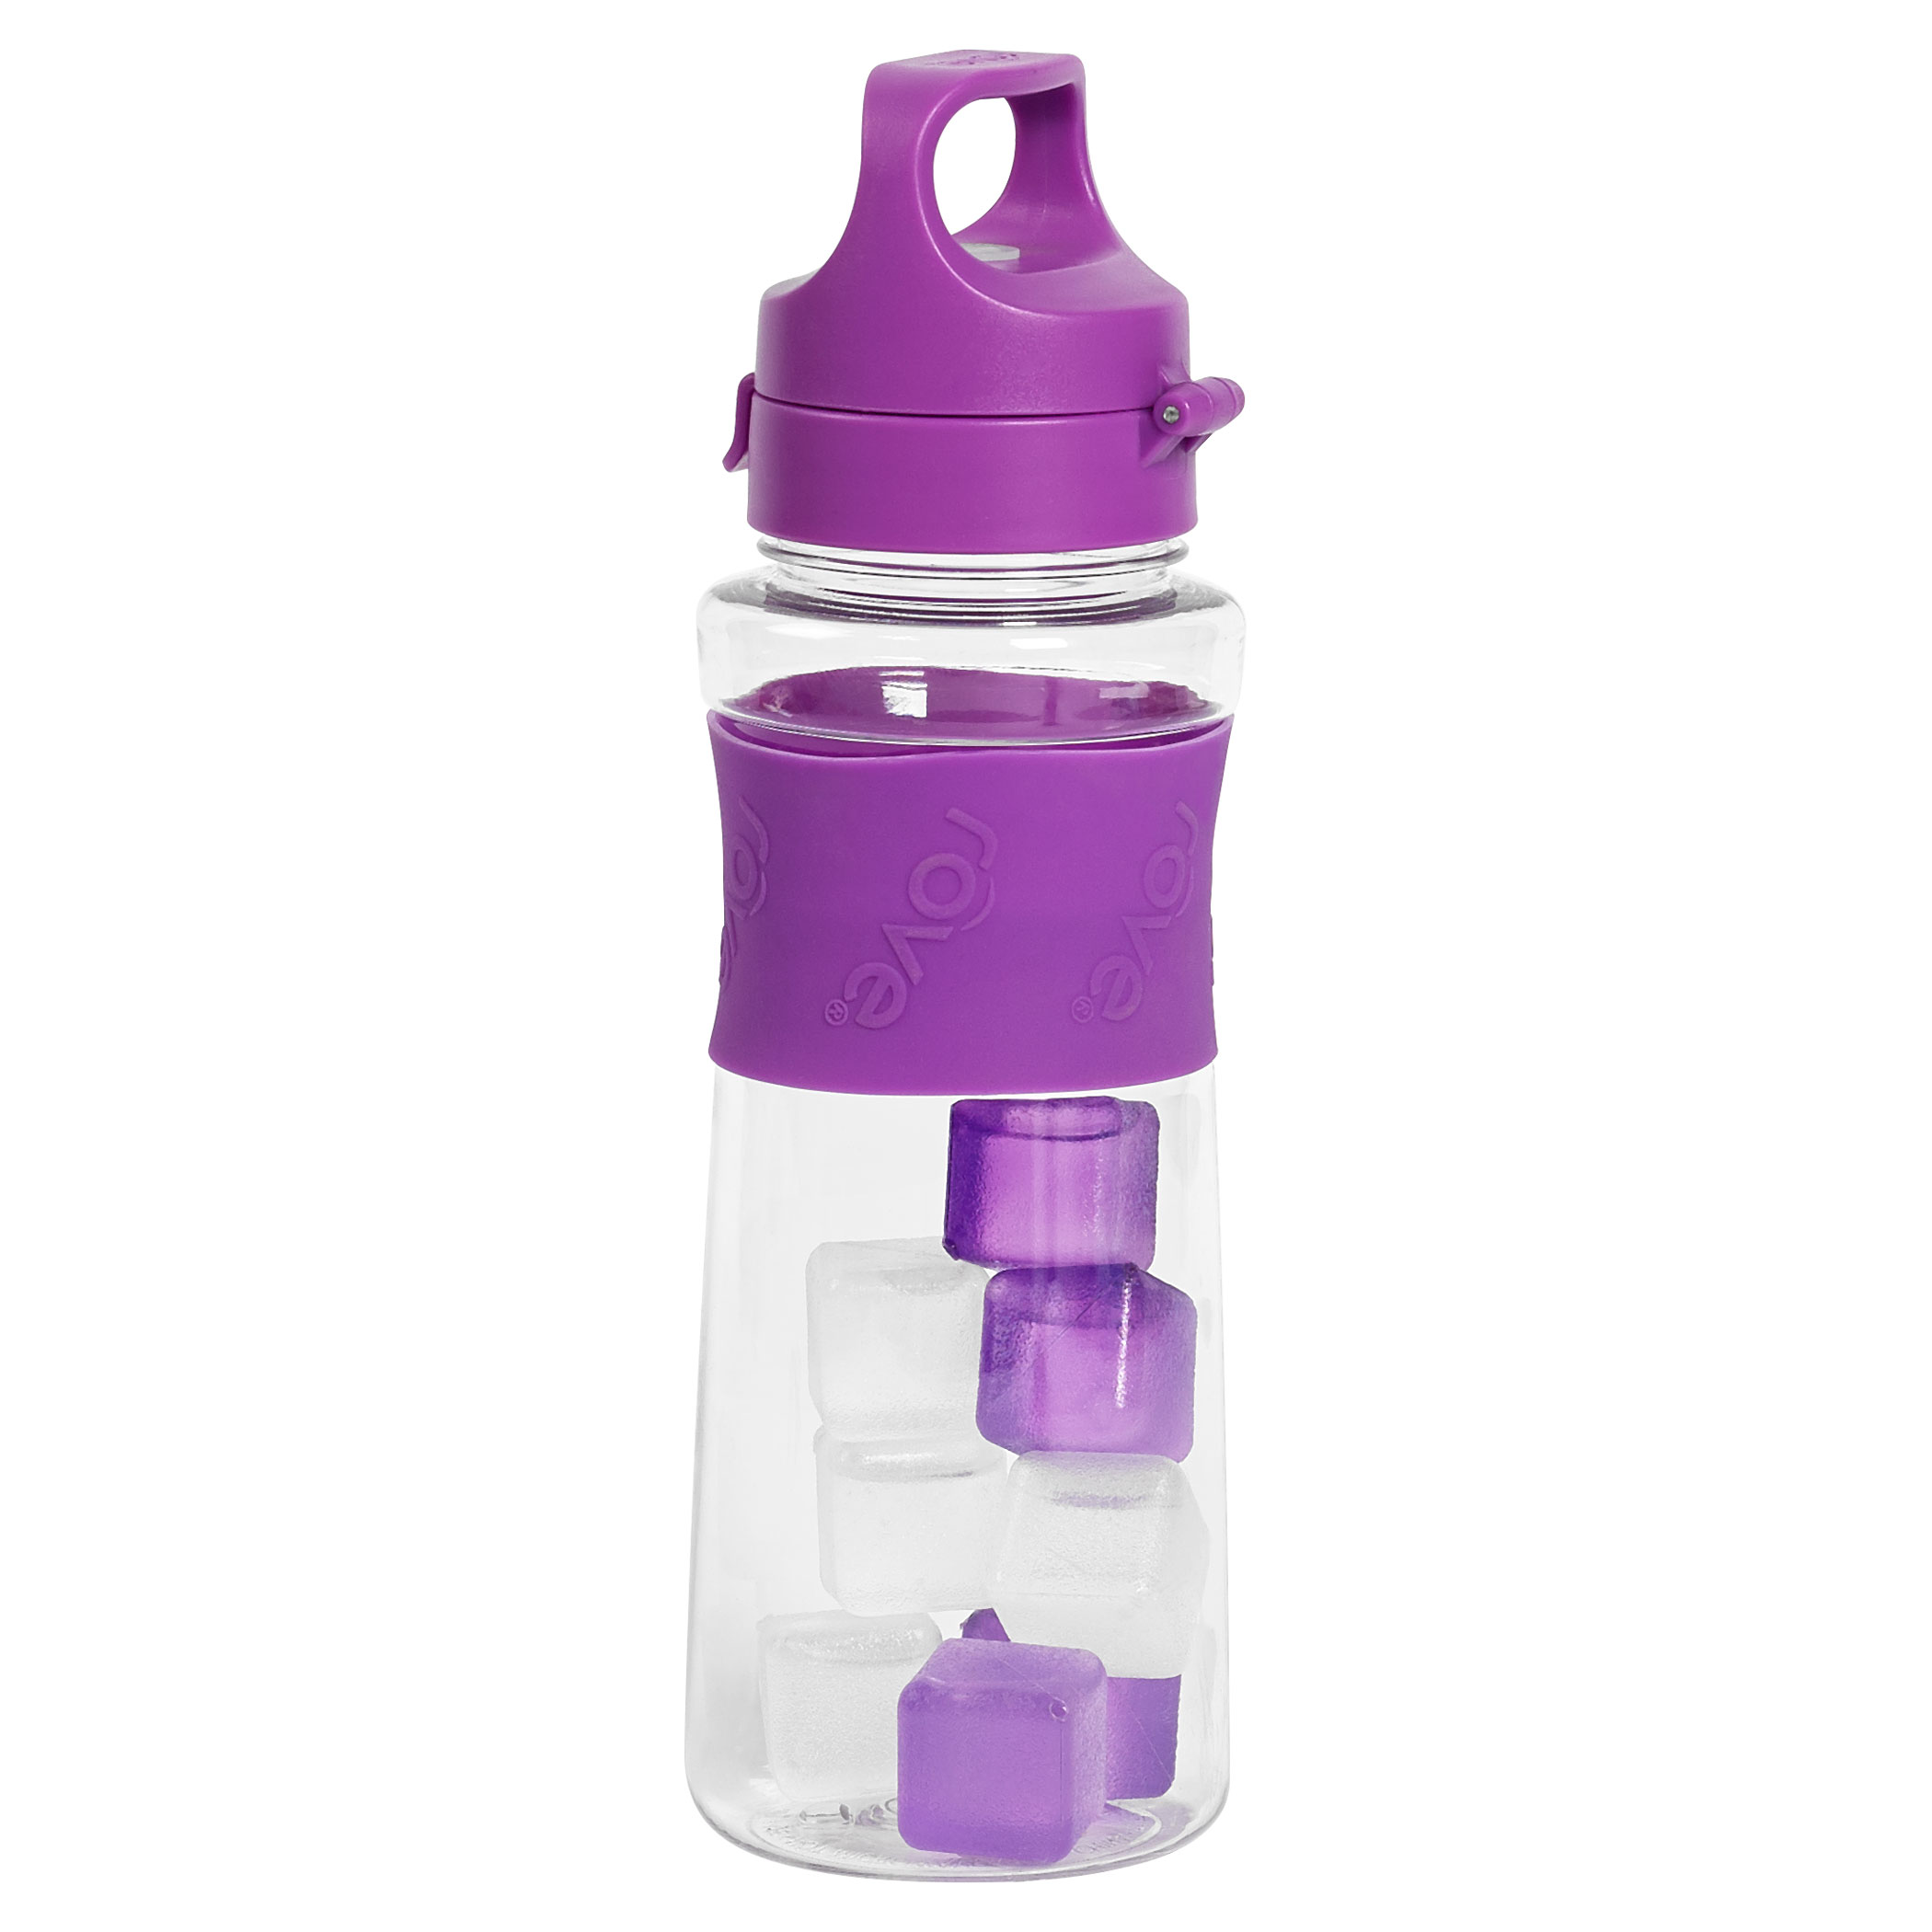 ... ™ Hydration Bottle with 8 Ice Cubes by rove® | Tabletops Unlimited: https://www.ttustore.com/product/24-ounce-tritan-hydration-bottle-8...